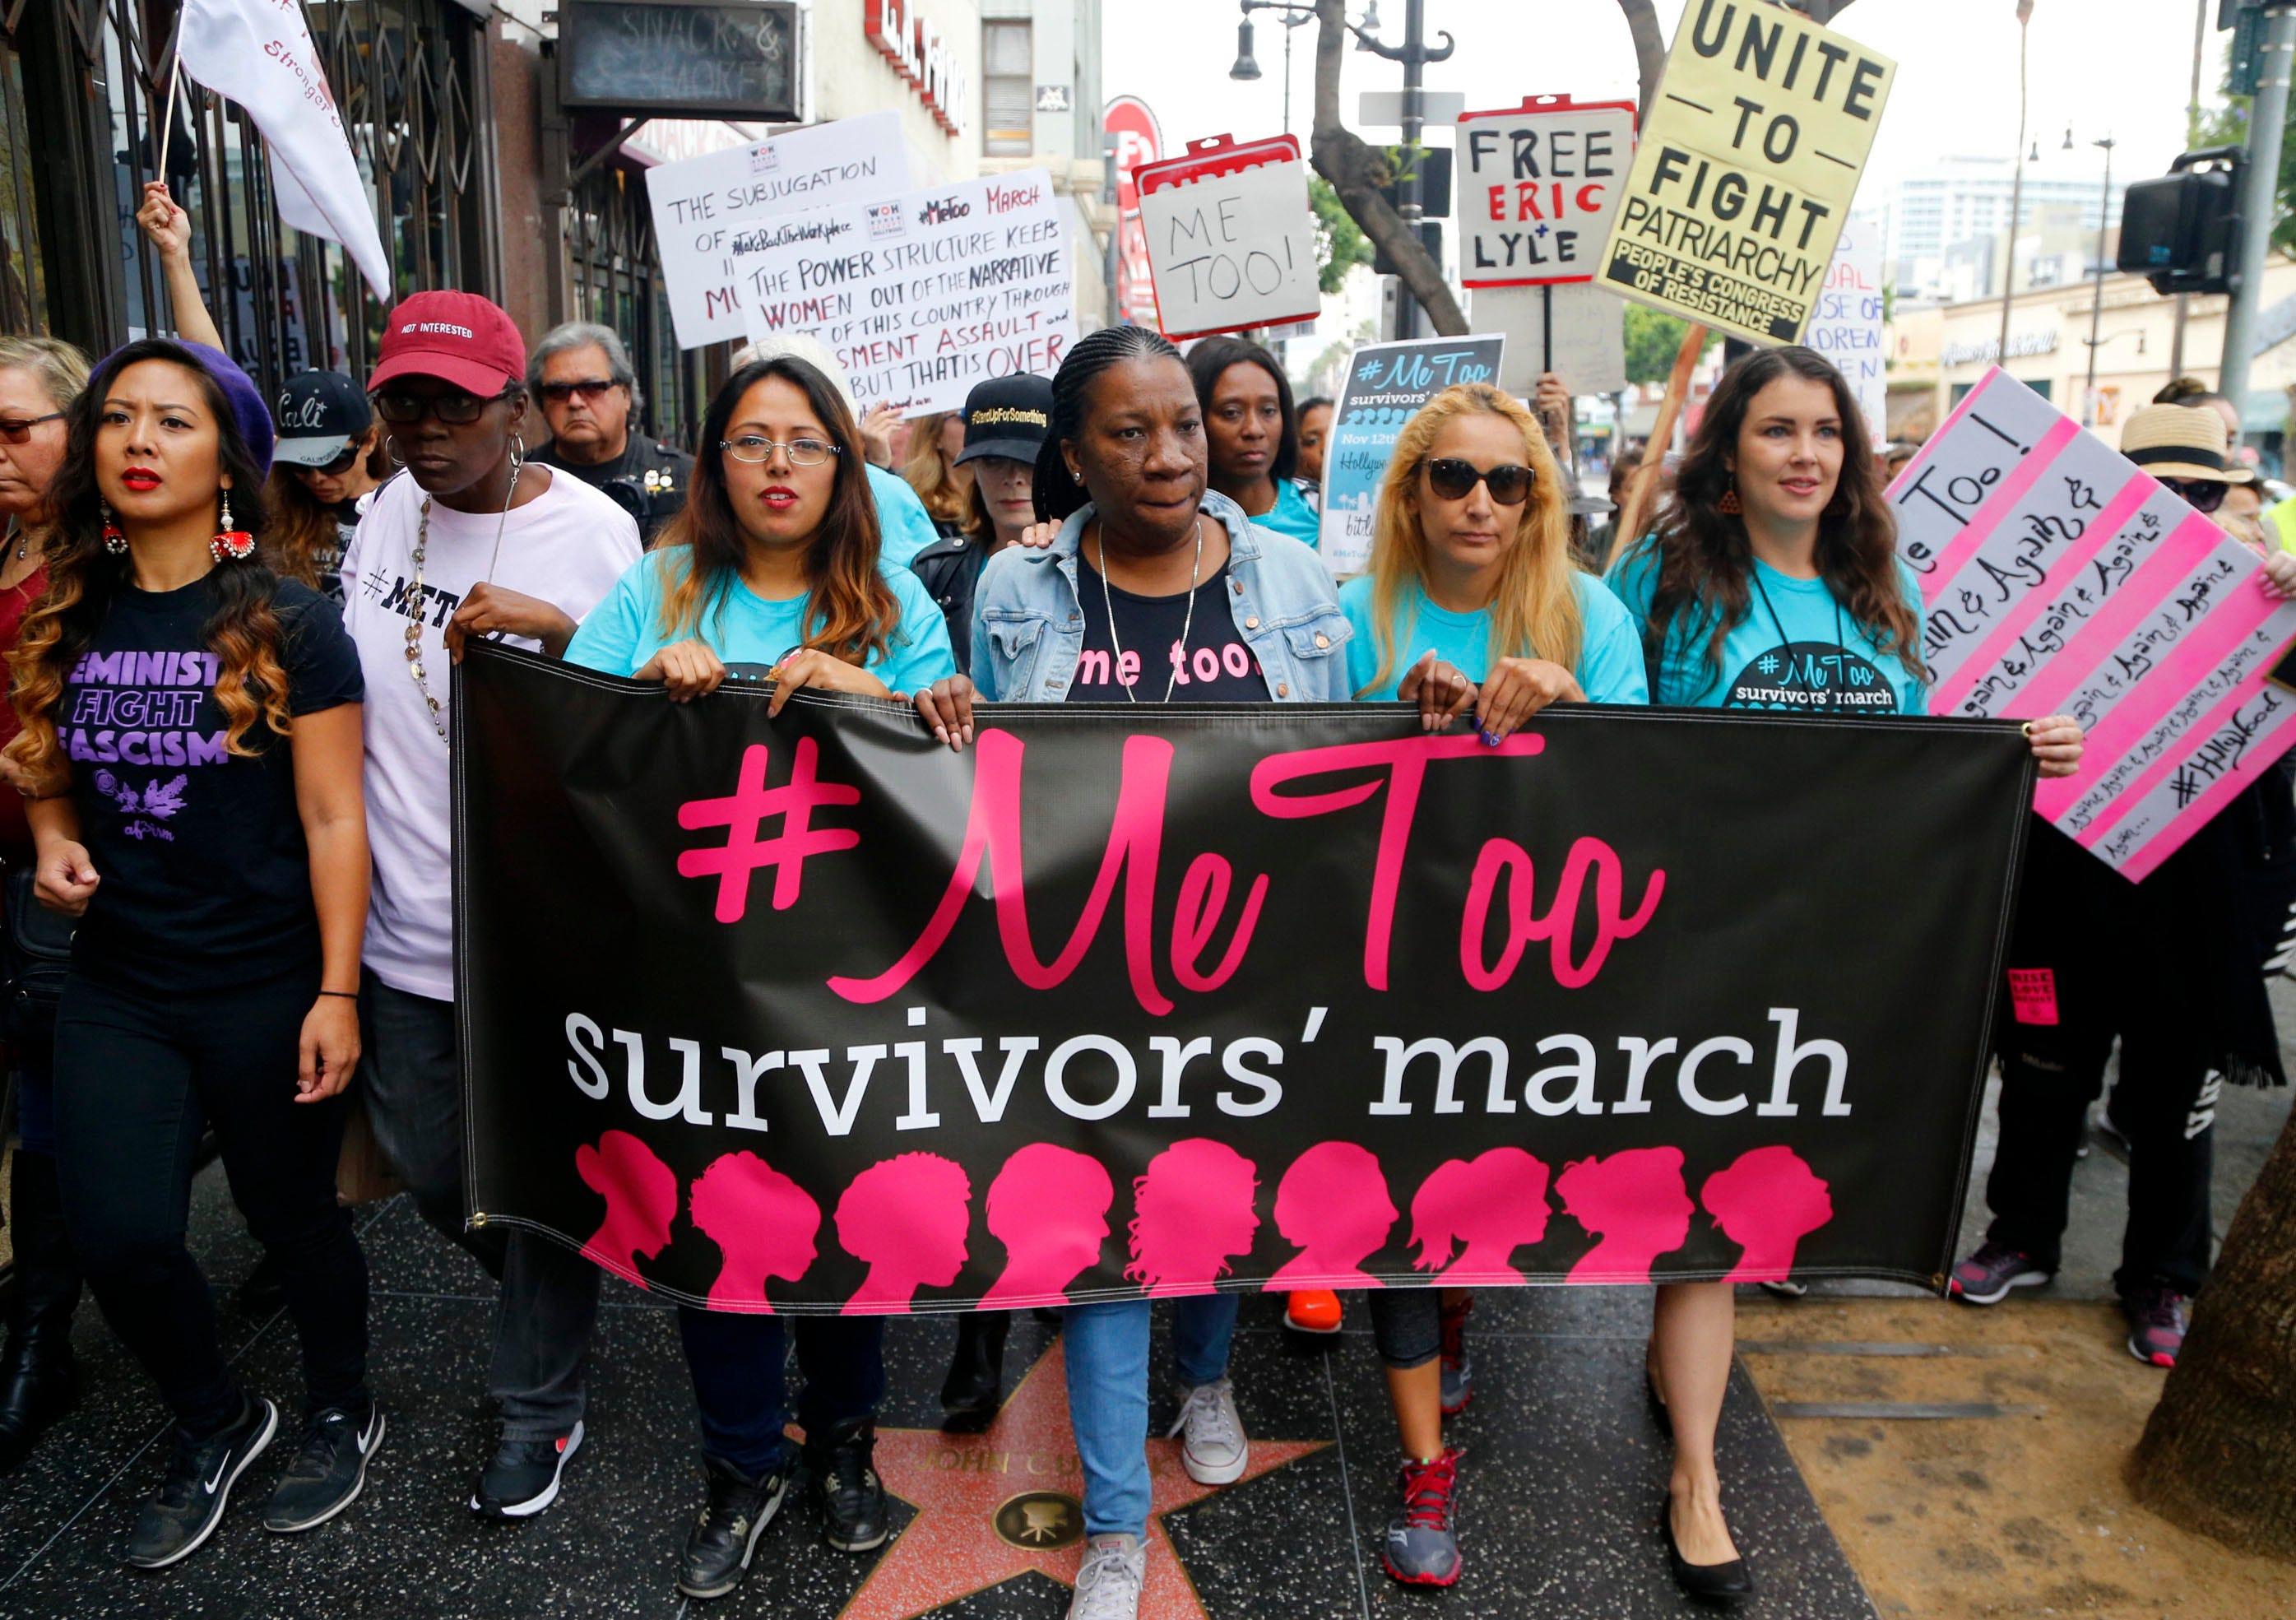 It's been two years since the MeToo movement started. Now what?